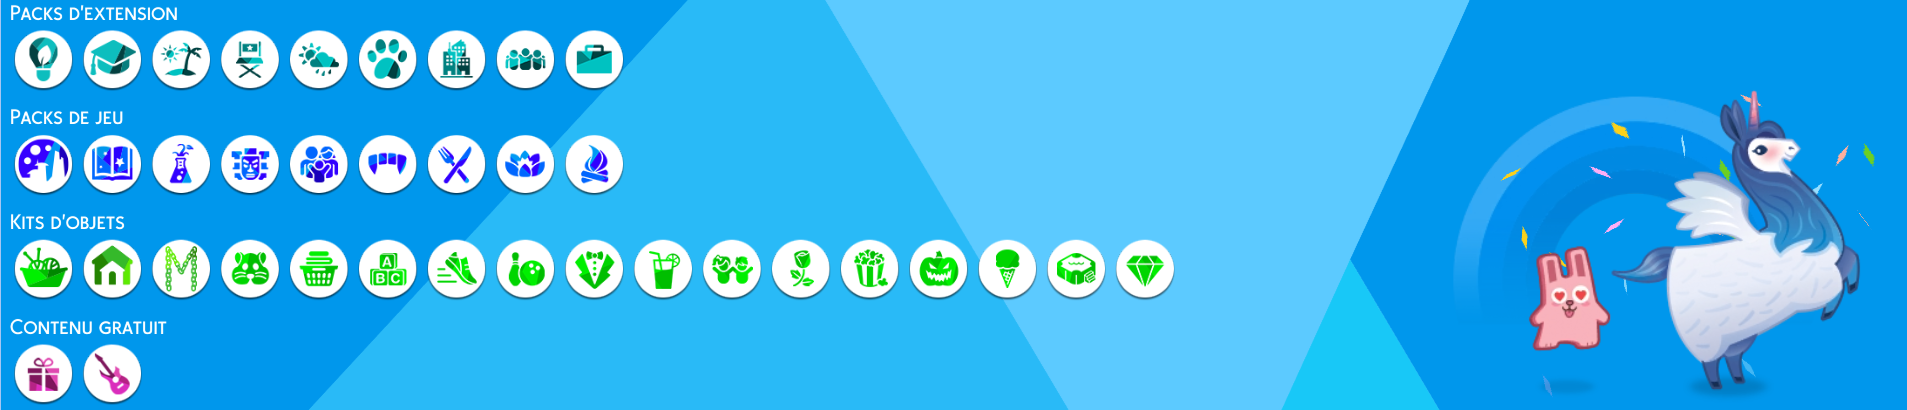 Les Sims 4 - Icones des Packs - New Design - Icons - All Packs